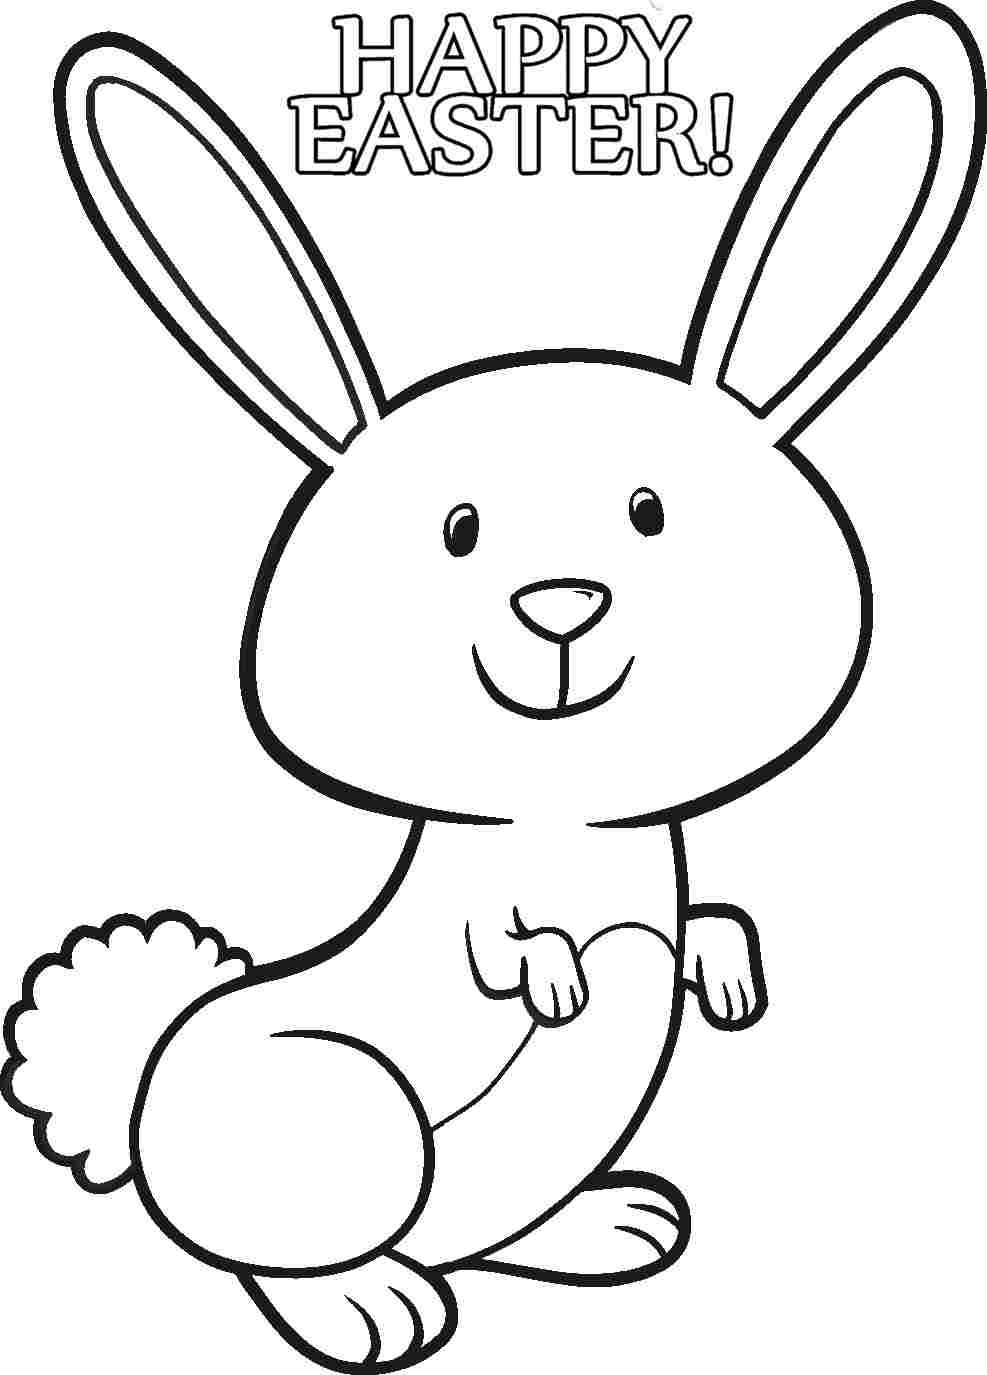 Free Easter Bunny Coloring Pages At Getdrawings Com Free